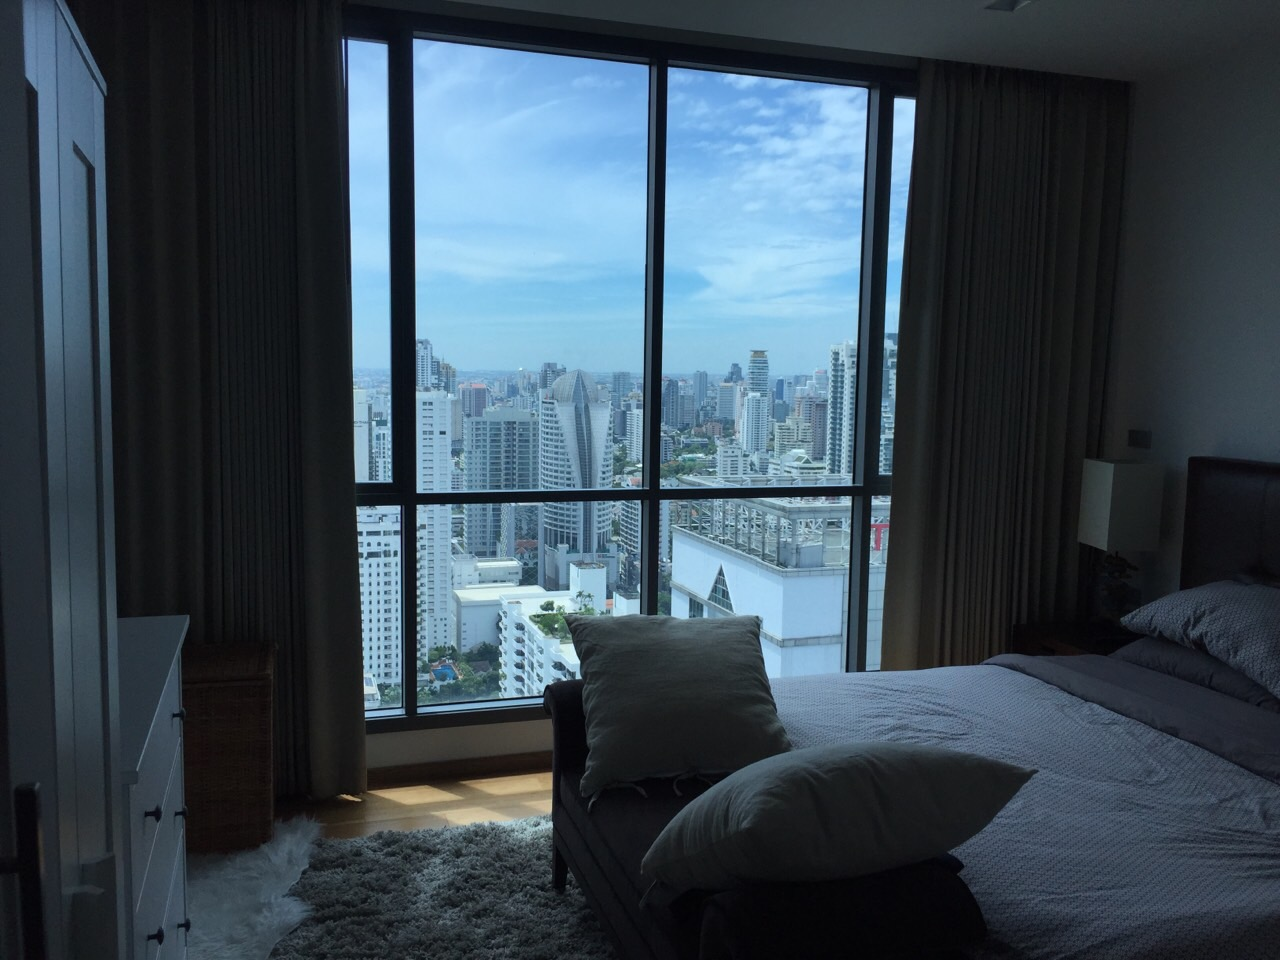 VisionQuest Thailand Property Agency's Bts Nana Spacious 1 bedroom + study room 2 bath size is 78sqm HIGH floor 2